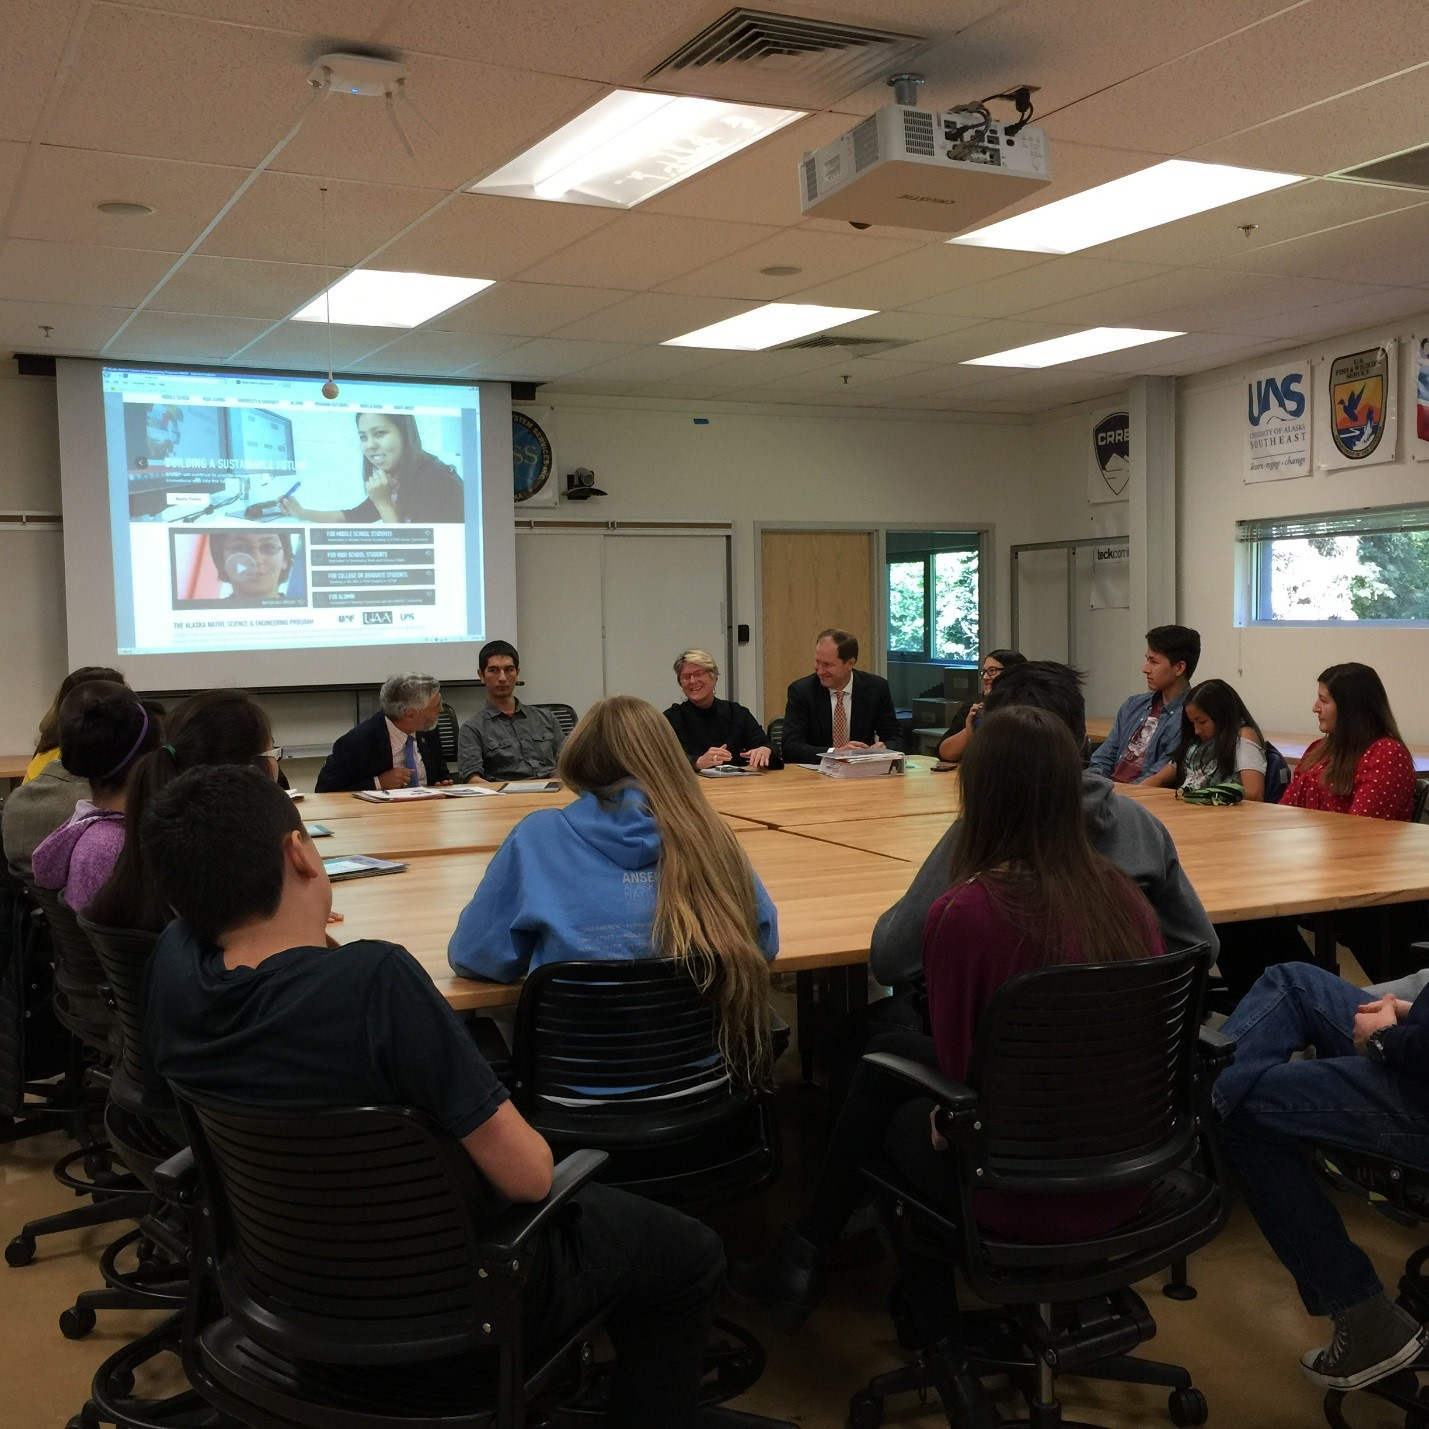 Meeting with students in the Alaska Native Science and Engineering Program (ANSEP)